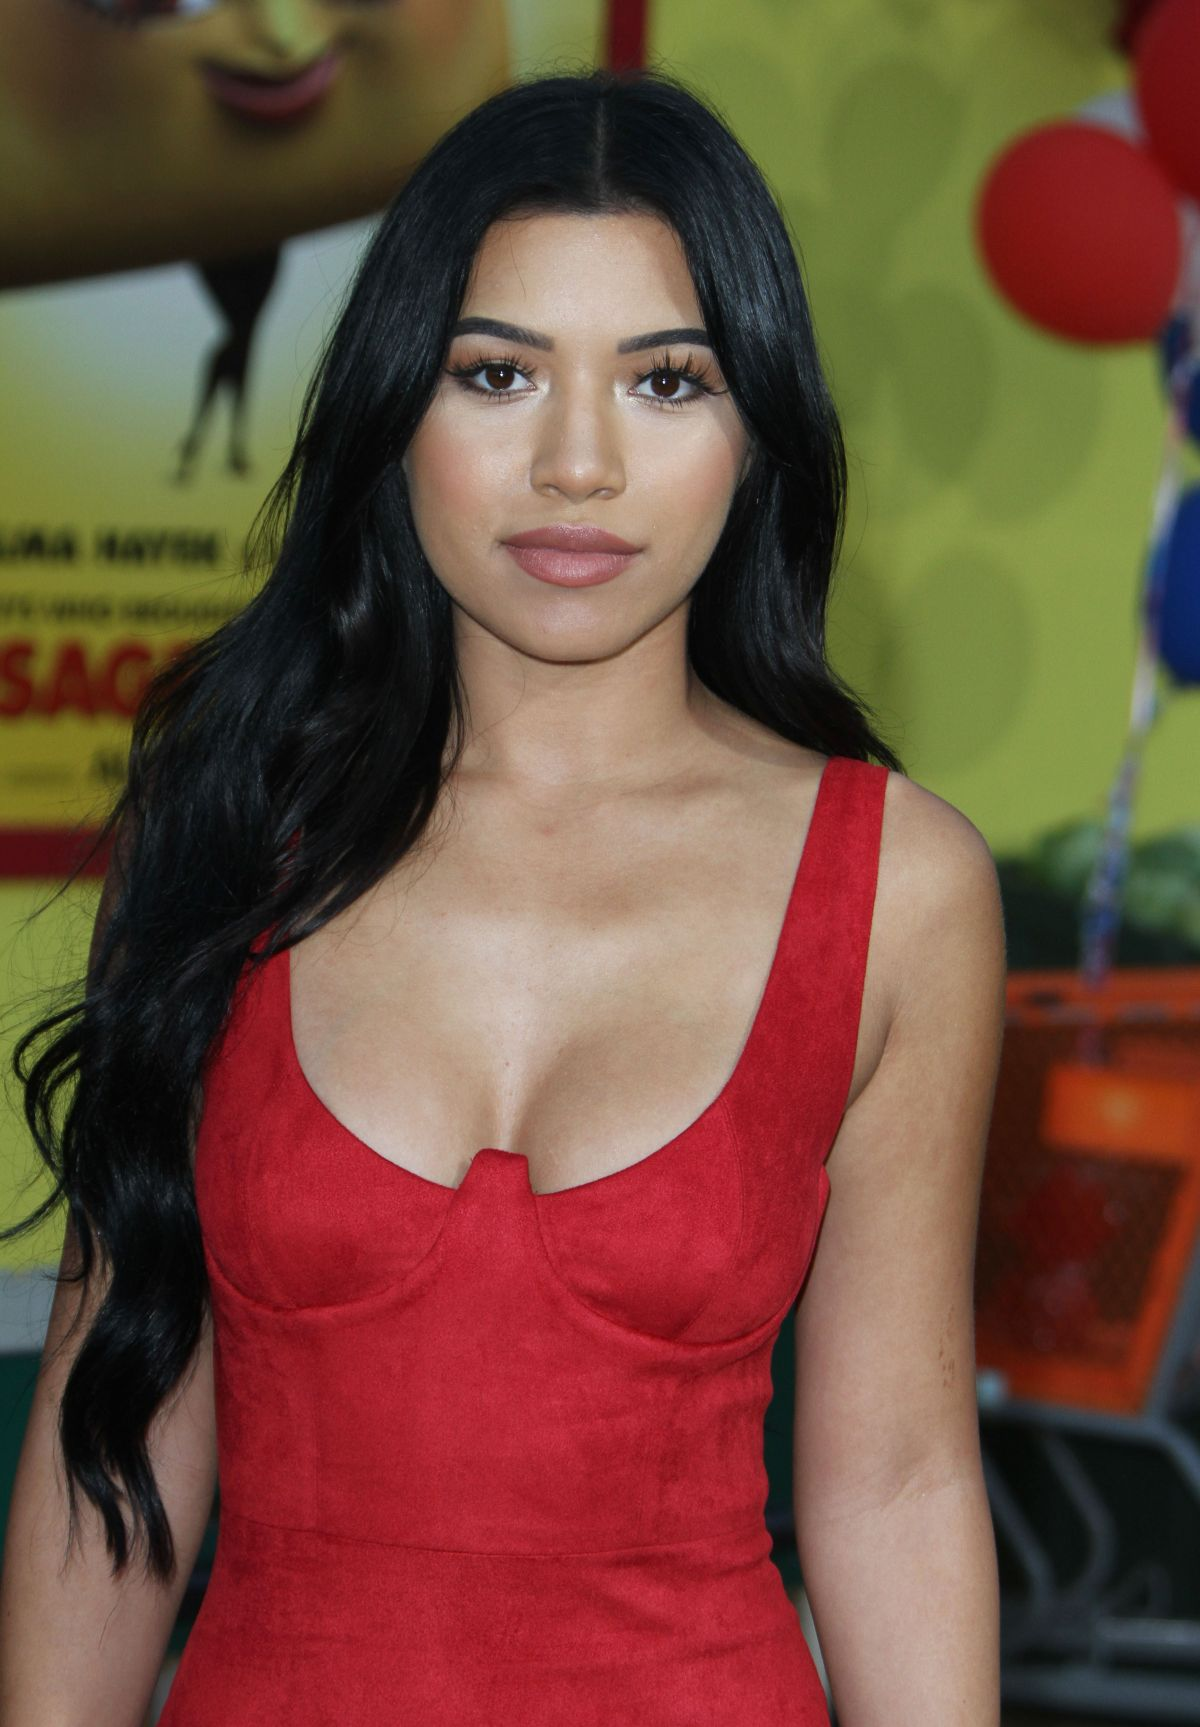 Julia Kelly Nude Photos 19